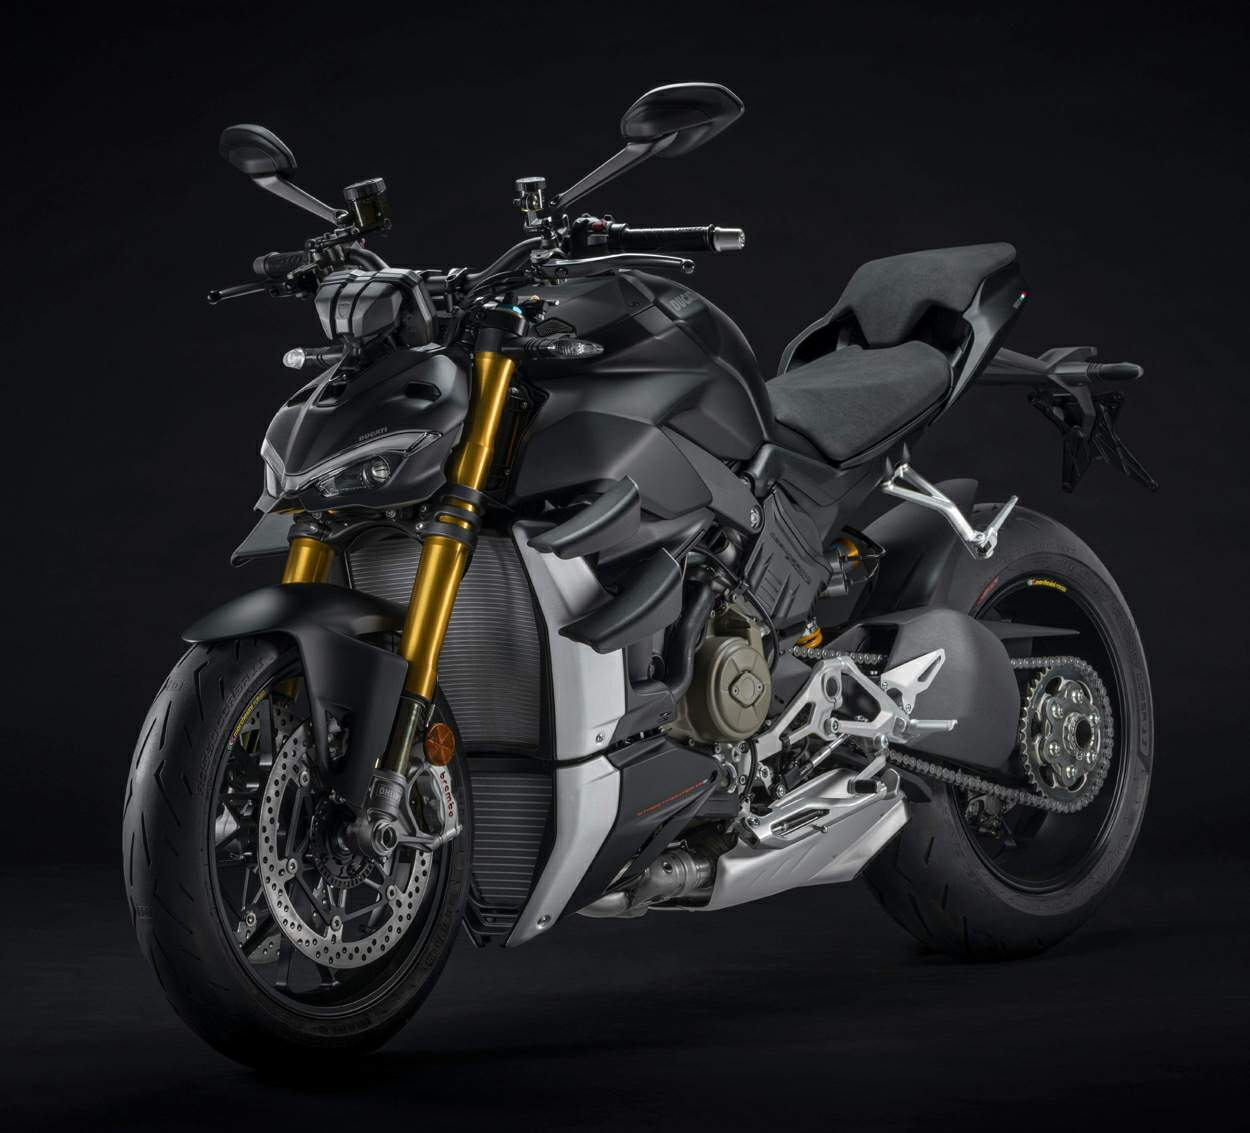 Ducati Streetfighter V4 S technical specifications